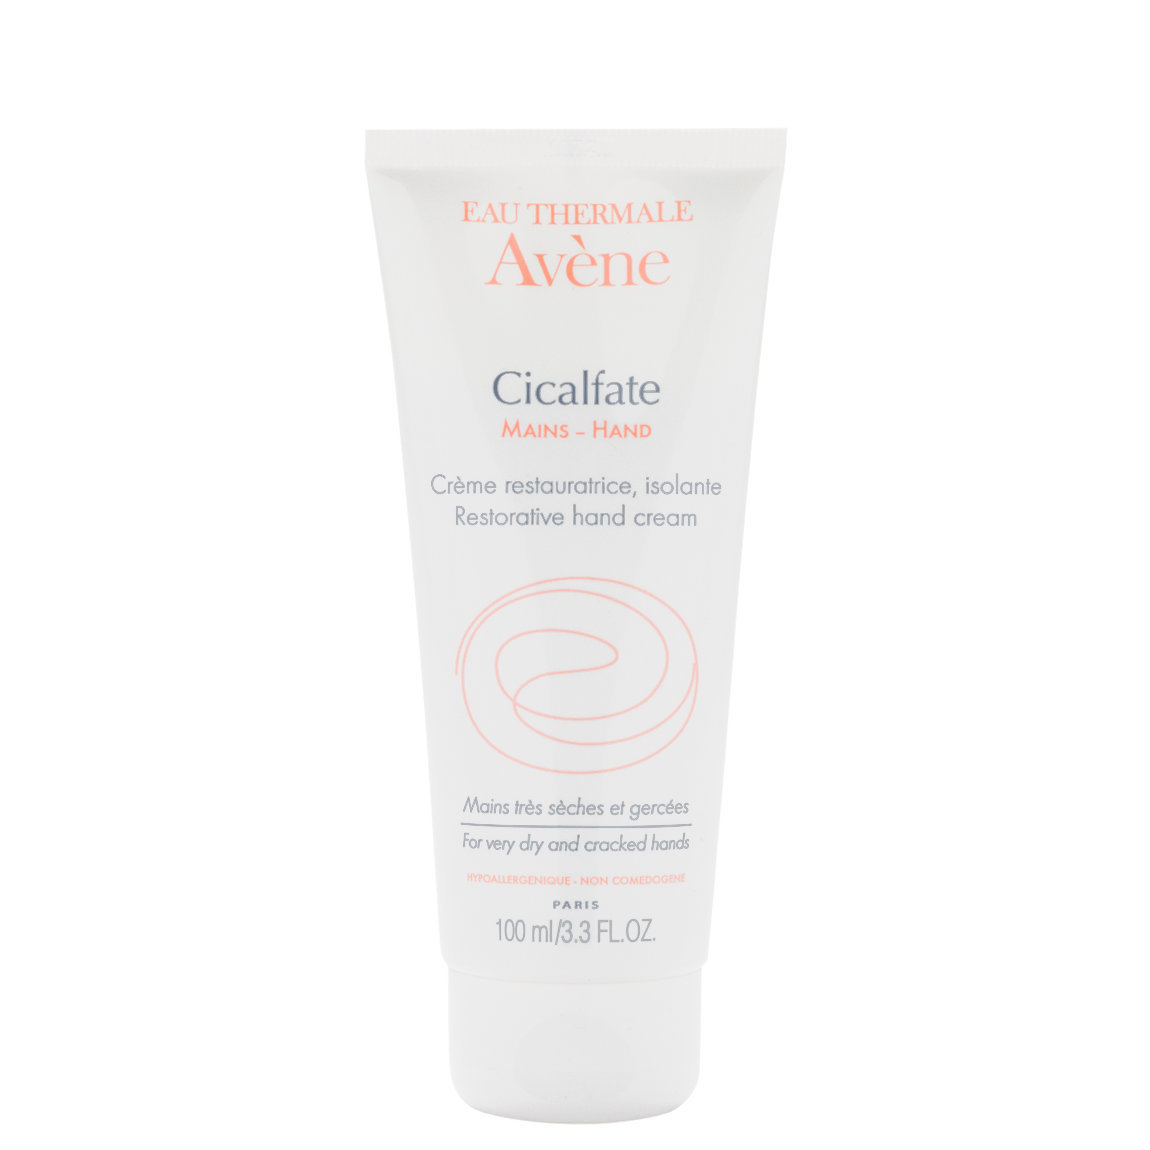 Eau Thermale Avène Cicalfate Hand Restorative Hand Cream product swatch.